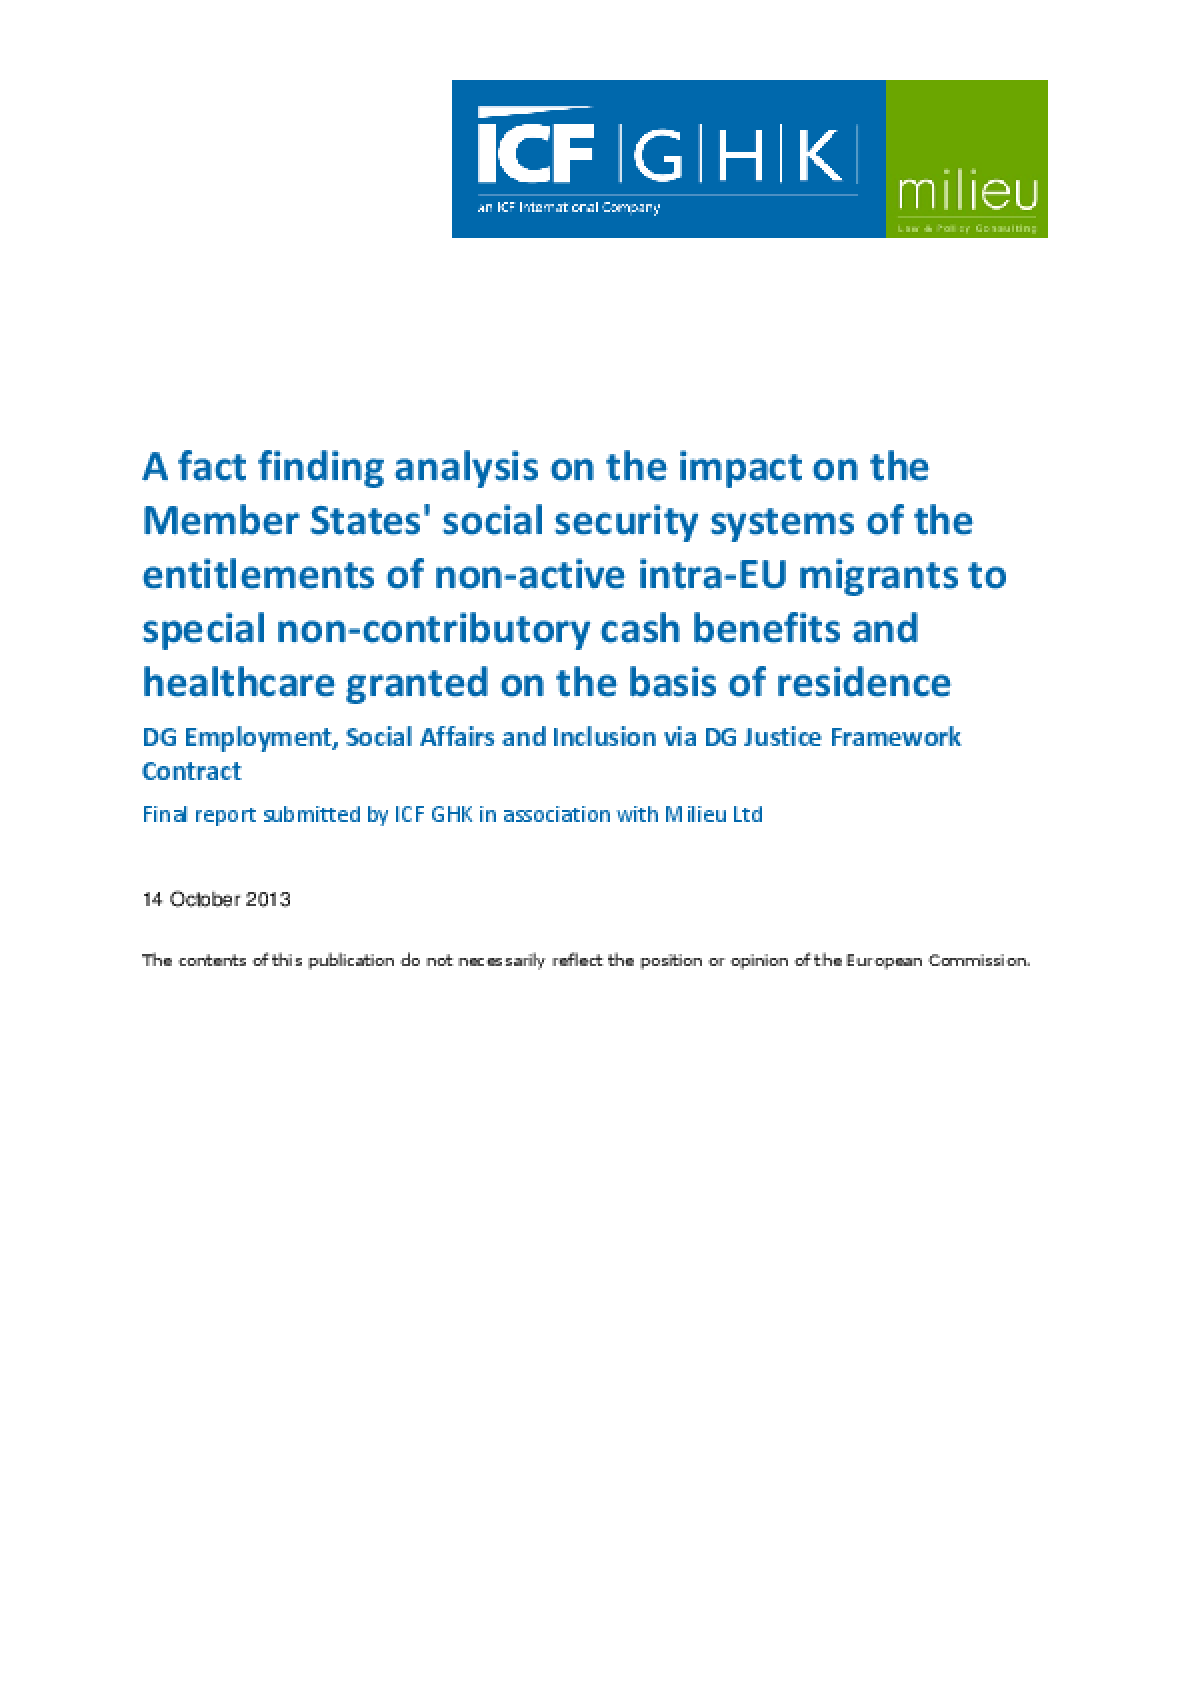 Fact Finding Analysis on the Impact on Member States' Social Security Systems of the Entitlements of Non-Active Intra-EU Migrants to Special Non-Contributory Cash Benefits and Healthcare Granted on the Basis of Residence